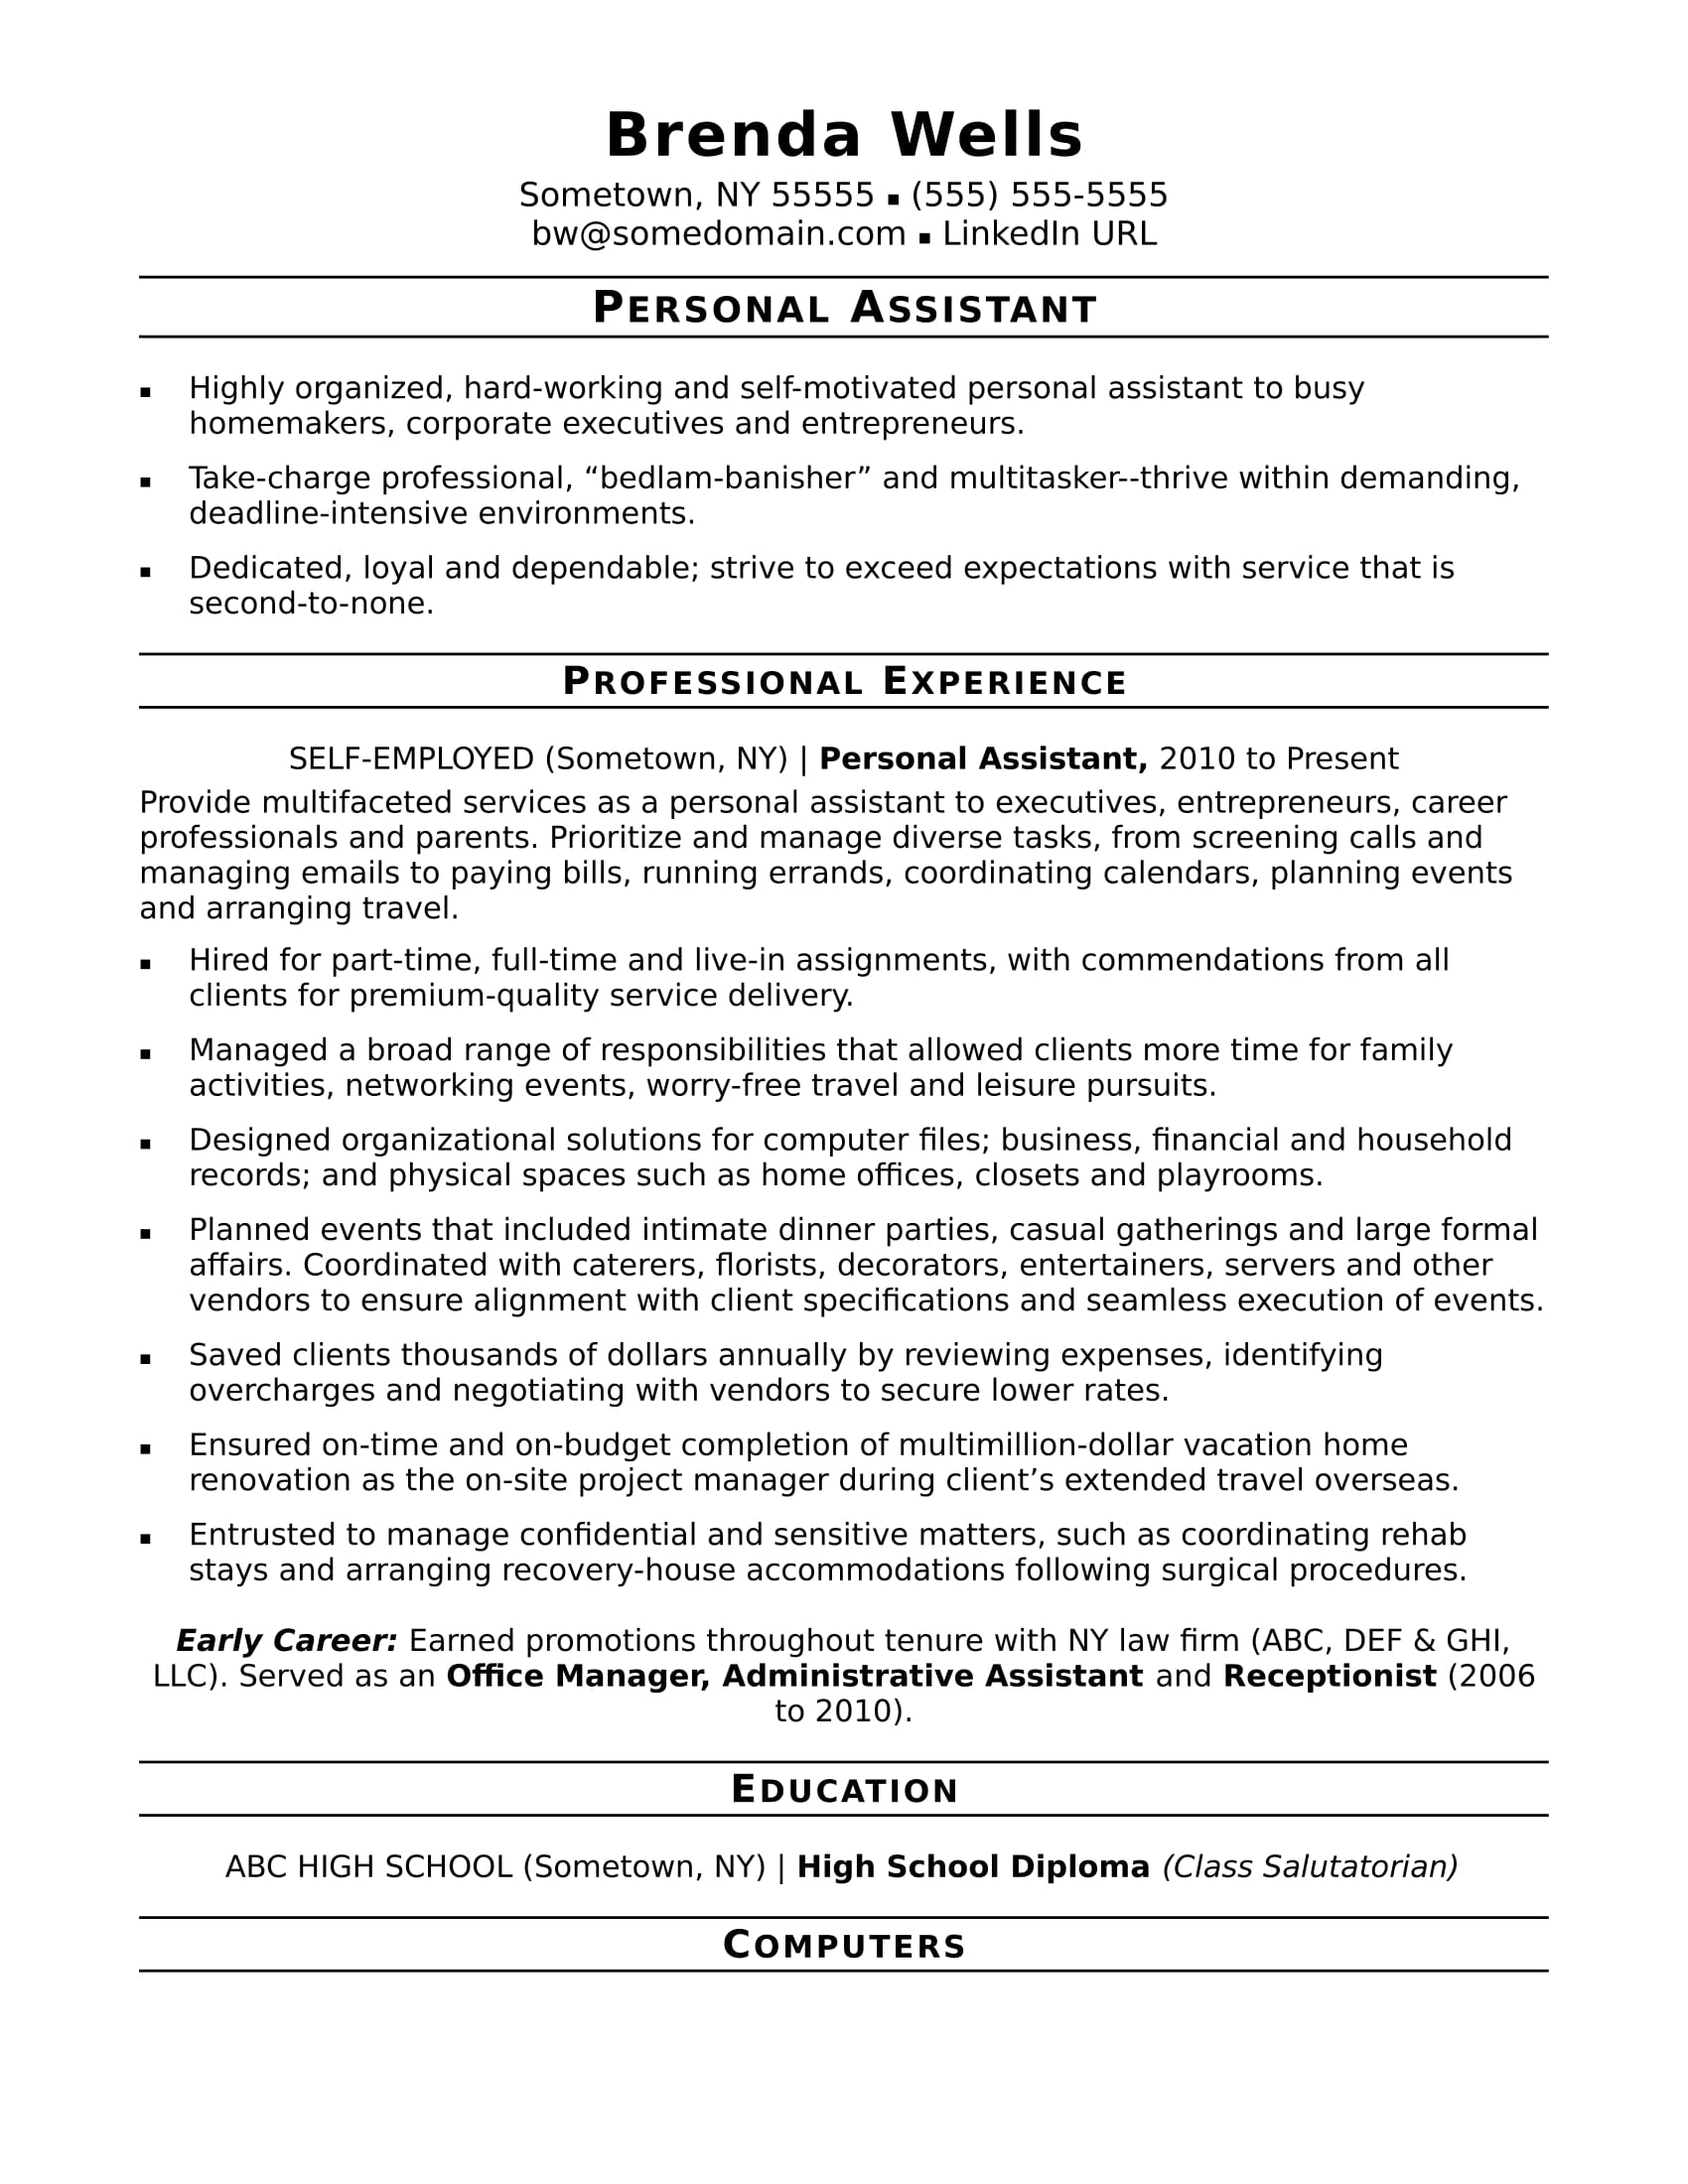 personal assistant resume sample monster listing self employment on examples for Resume Listing Self Employment On Resume